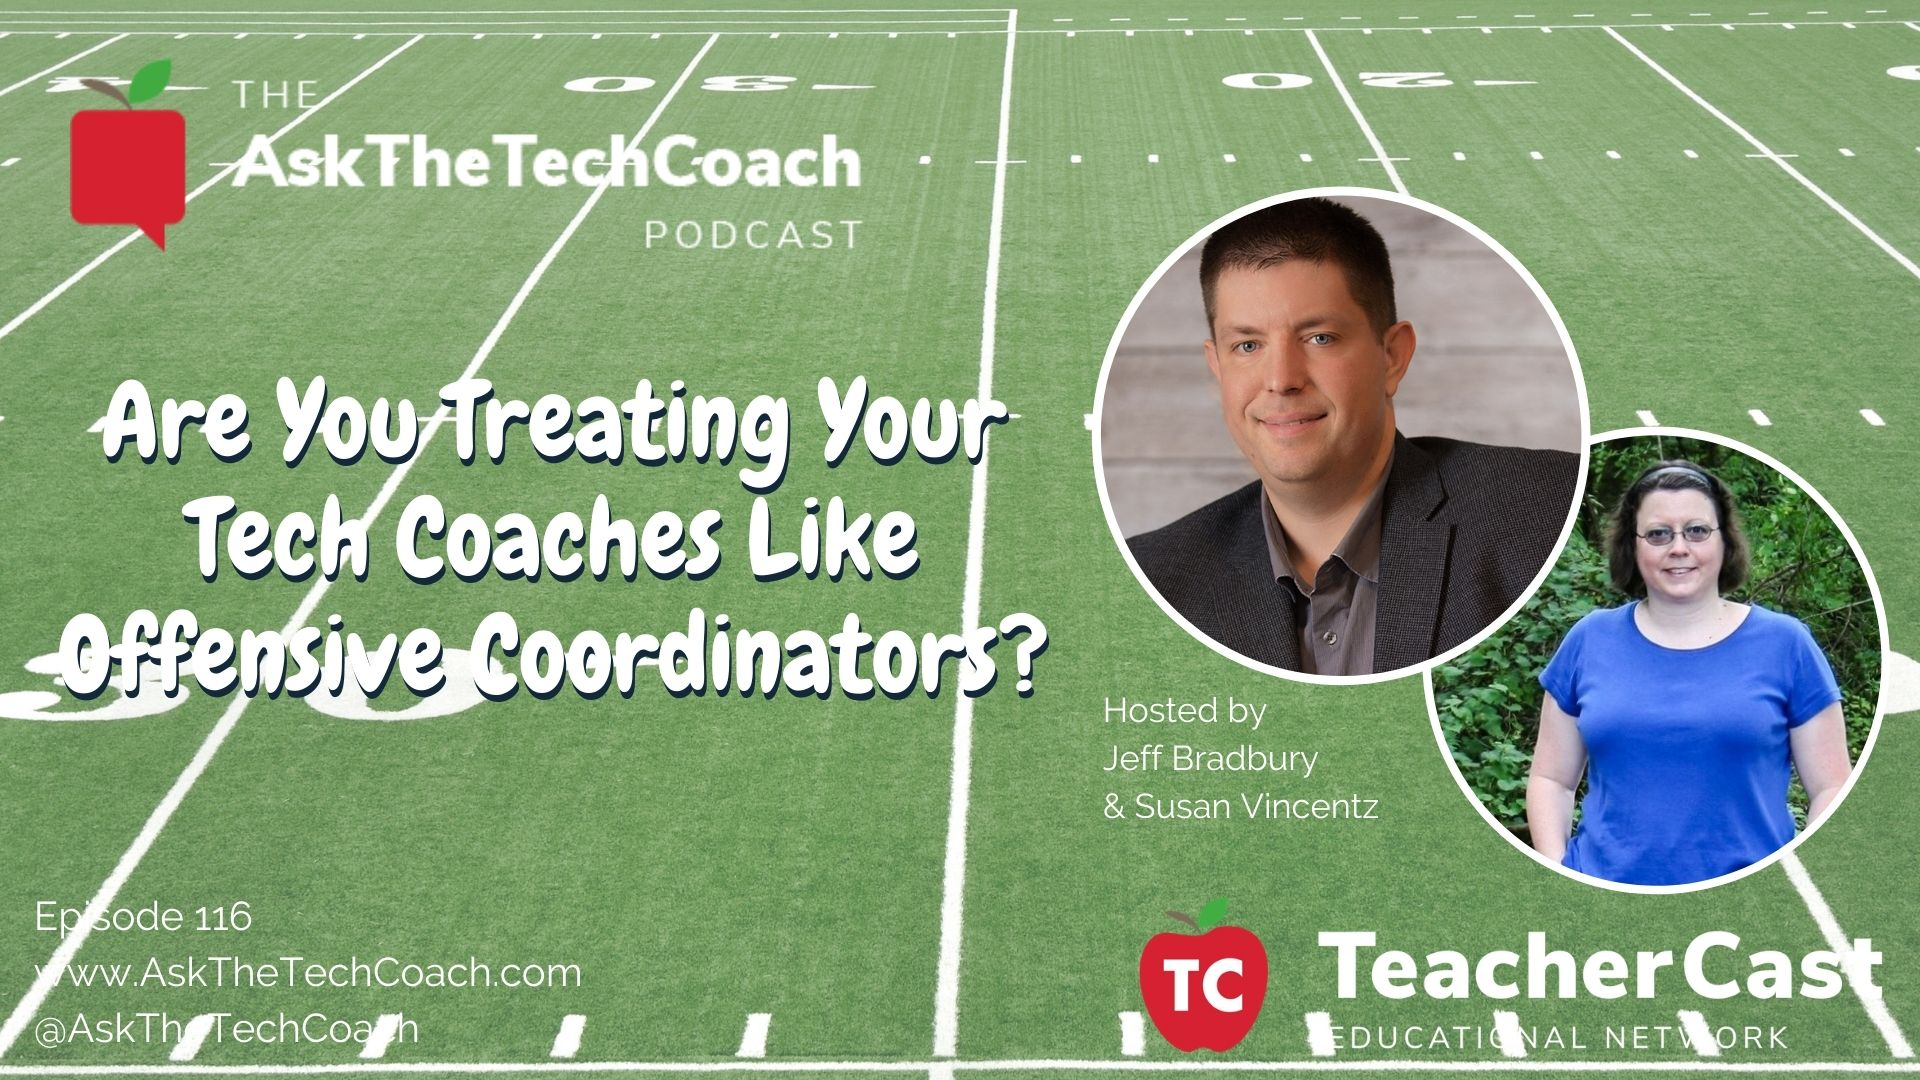 Tech Coaches as Offensive Coordinators